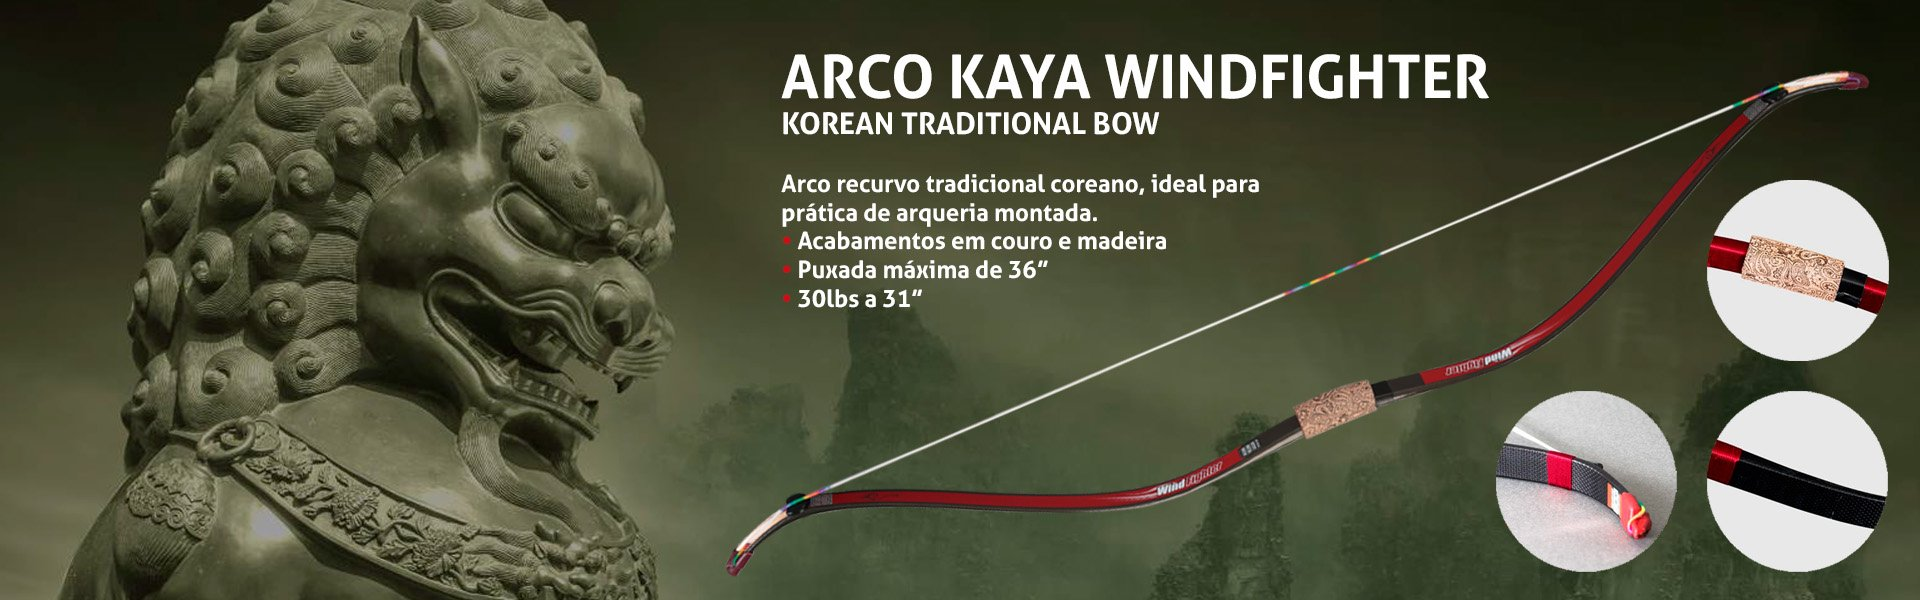 Banner Arco Kaya Windfighter